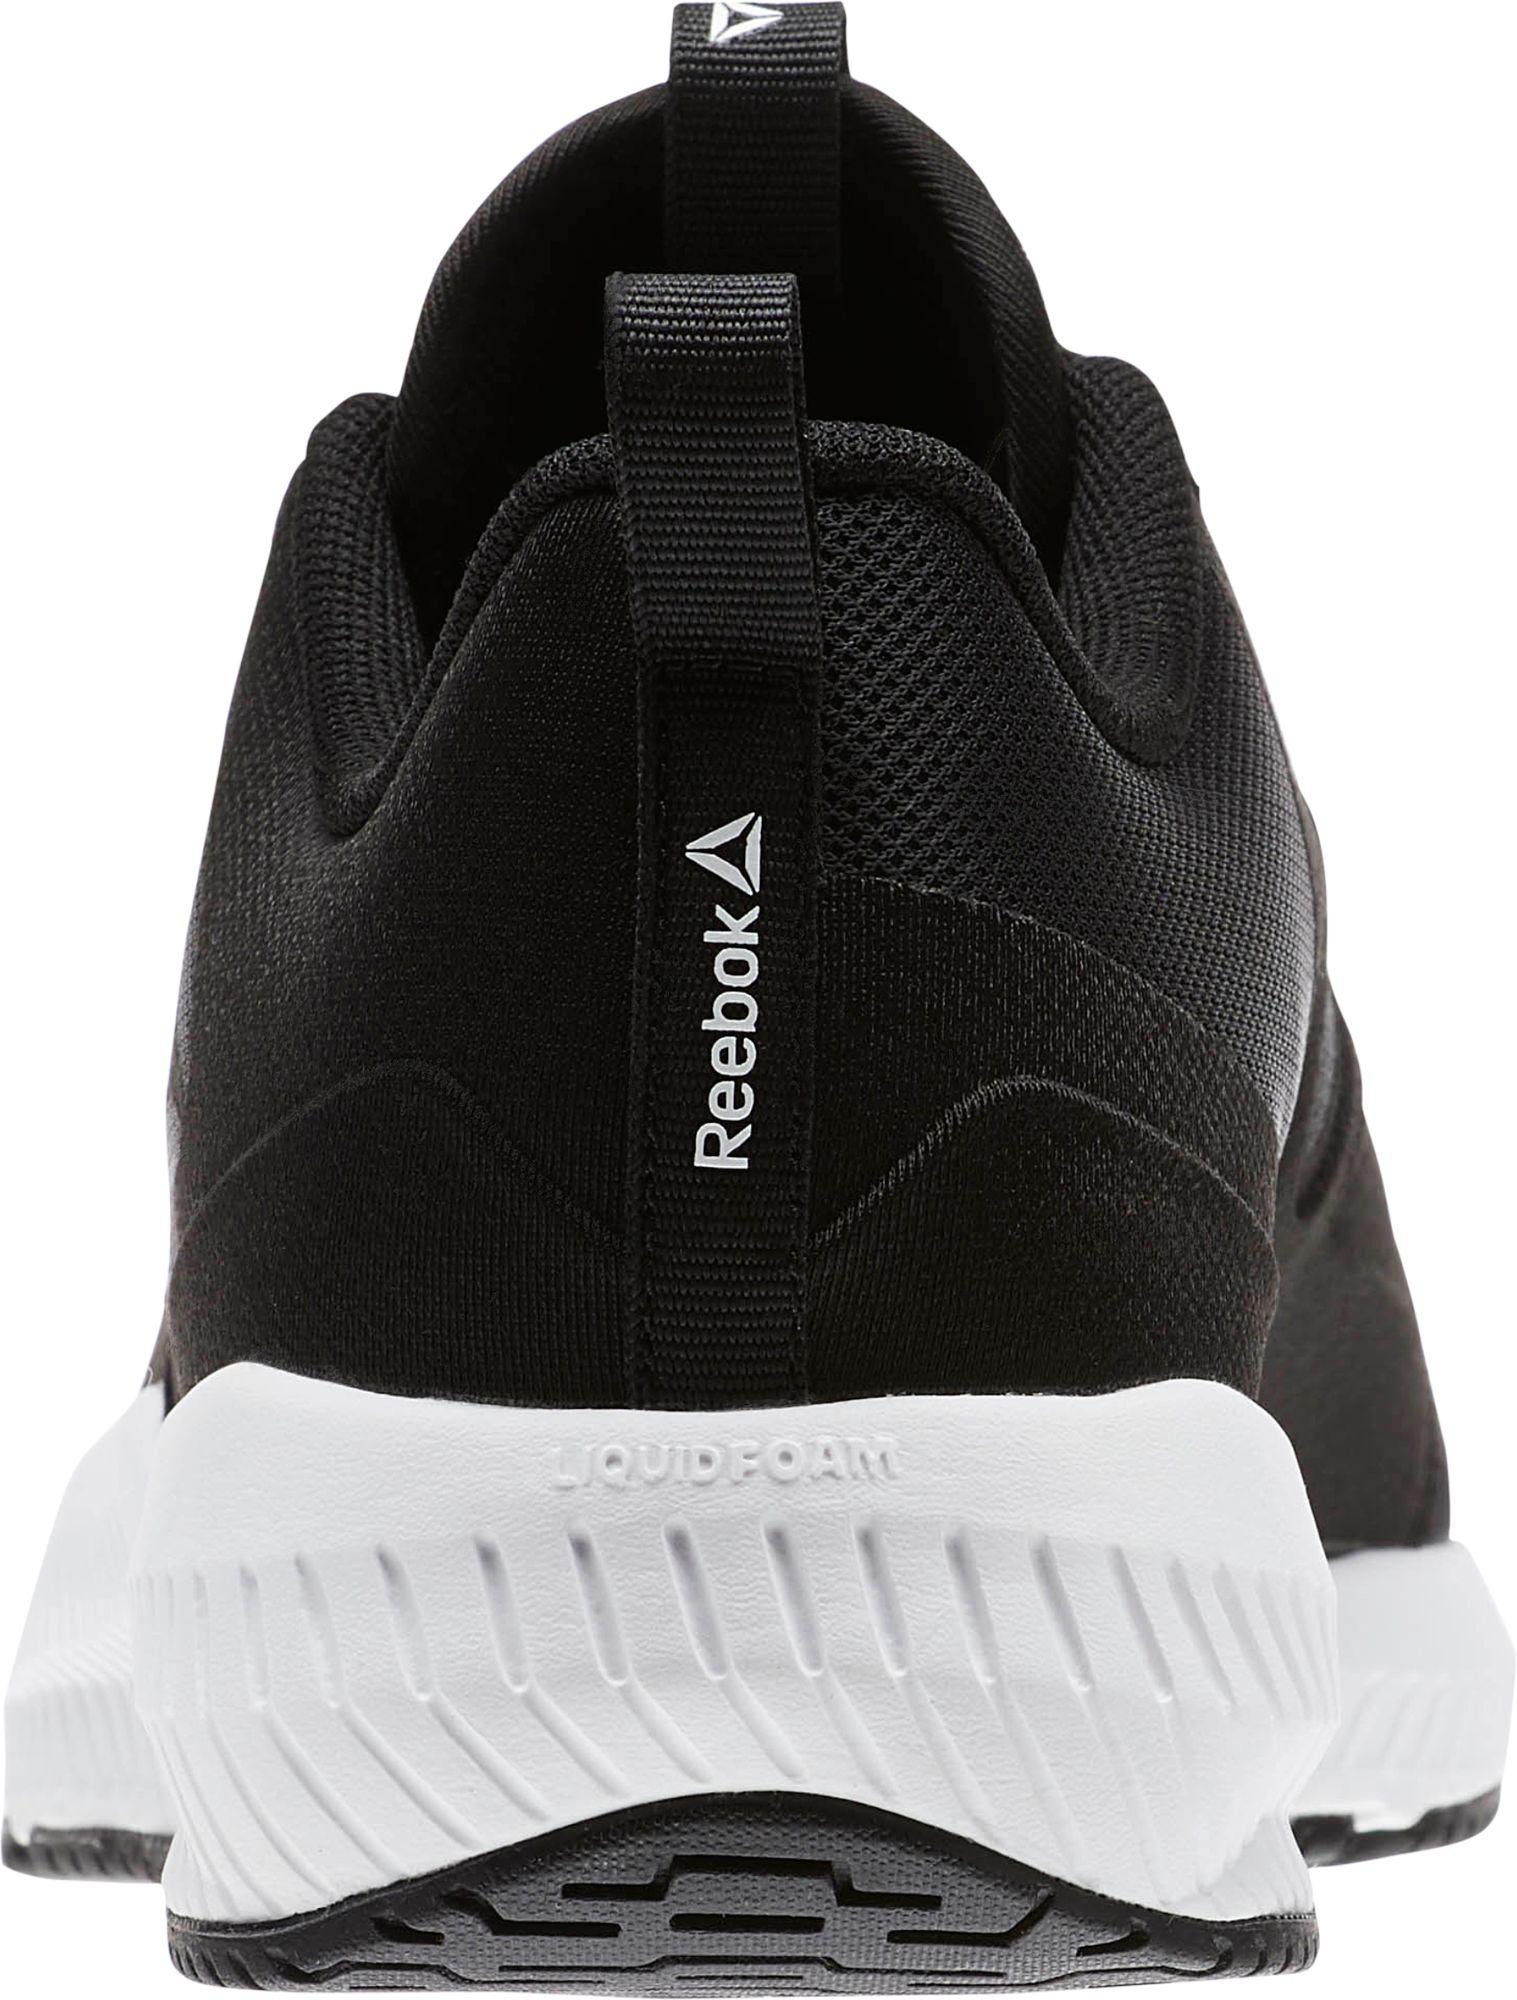 34a53371aa0605 Lyst - Reebok Hydrorush Tr Training Shoes in Black for Men